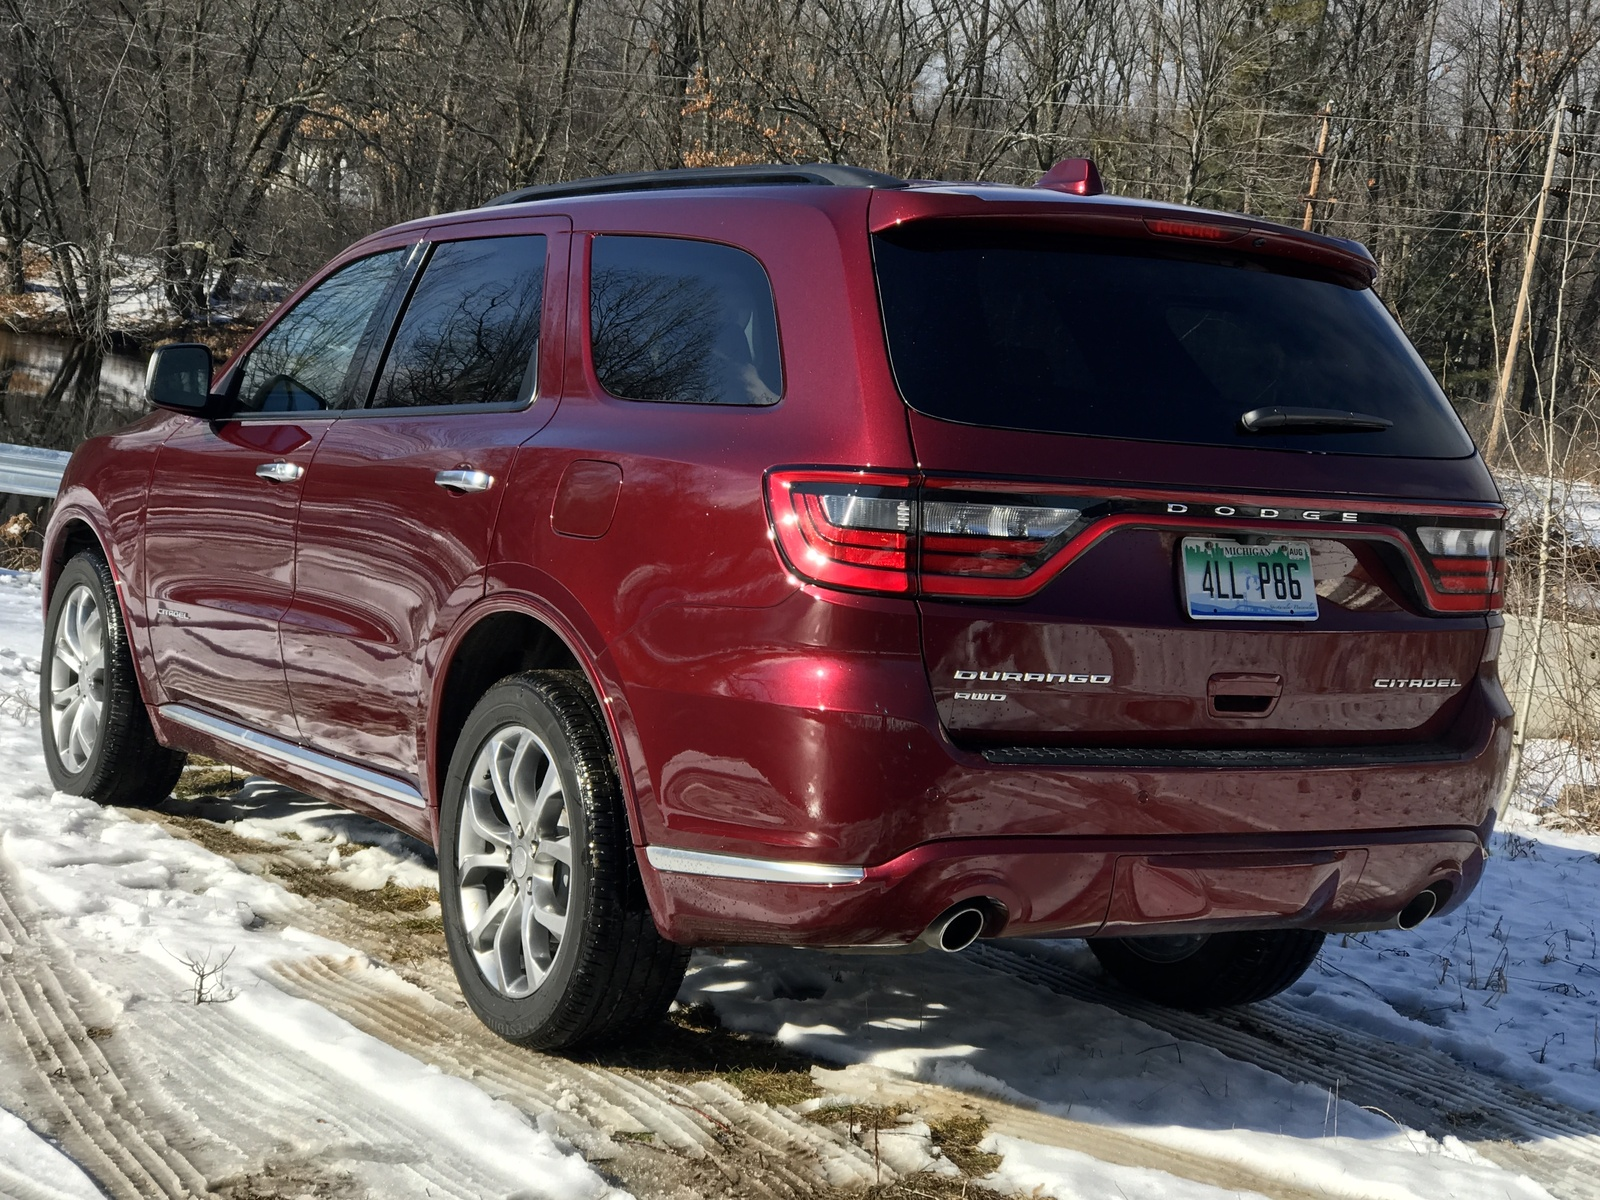 2017 Dodge Durango Citadel AWD Rear